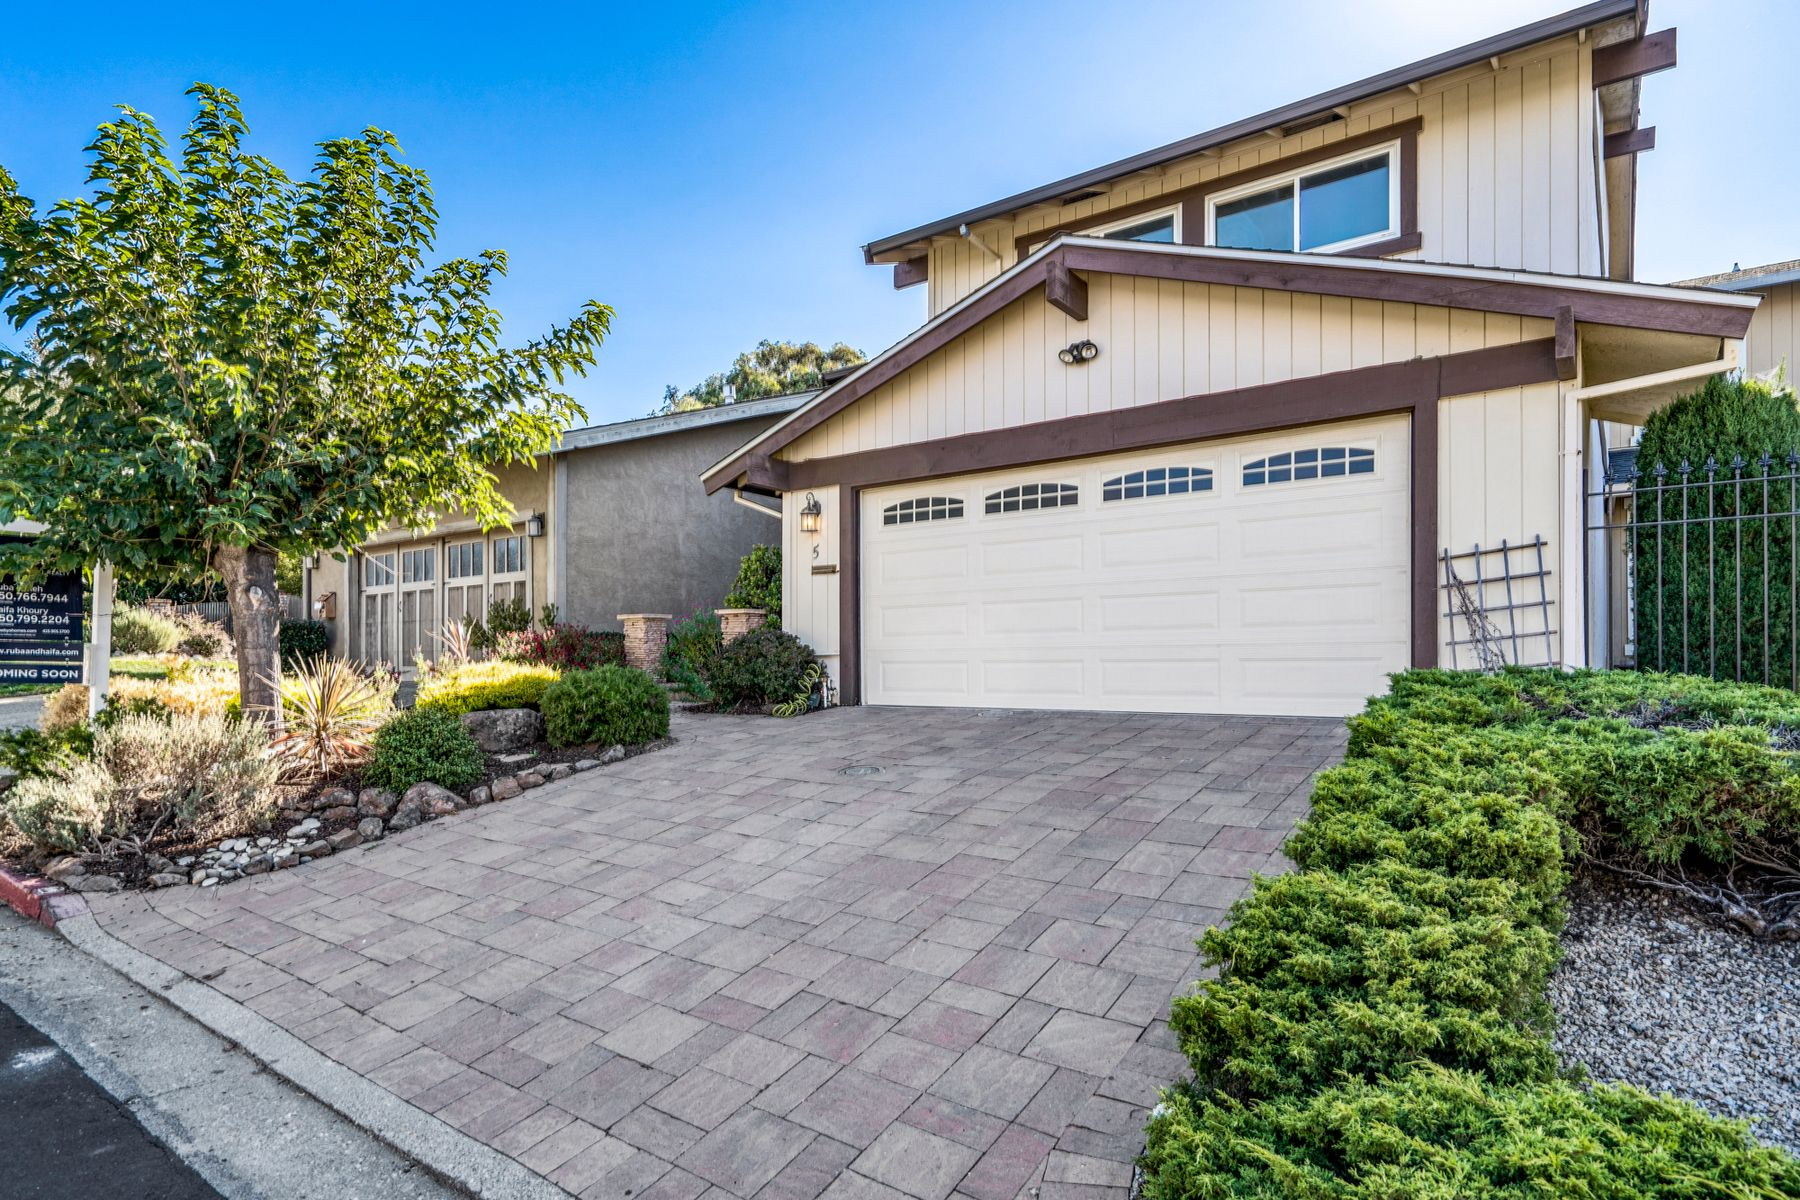 Single Family Homes for Sale at Belmont Beauty With Canyon Views 5 Ridgewood Ct Belmont, California 94002 United States